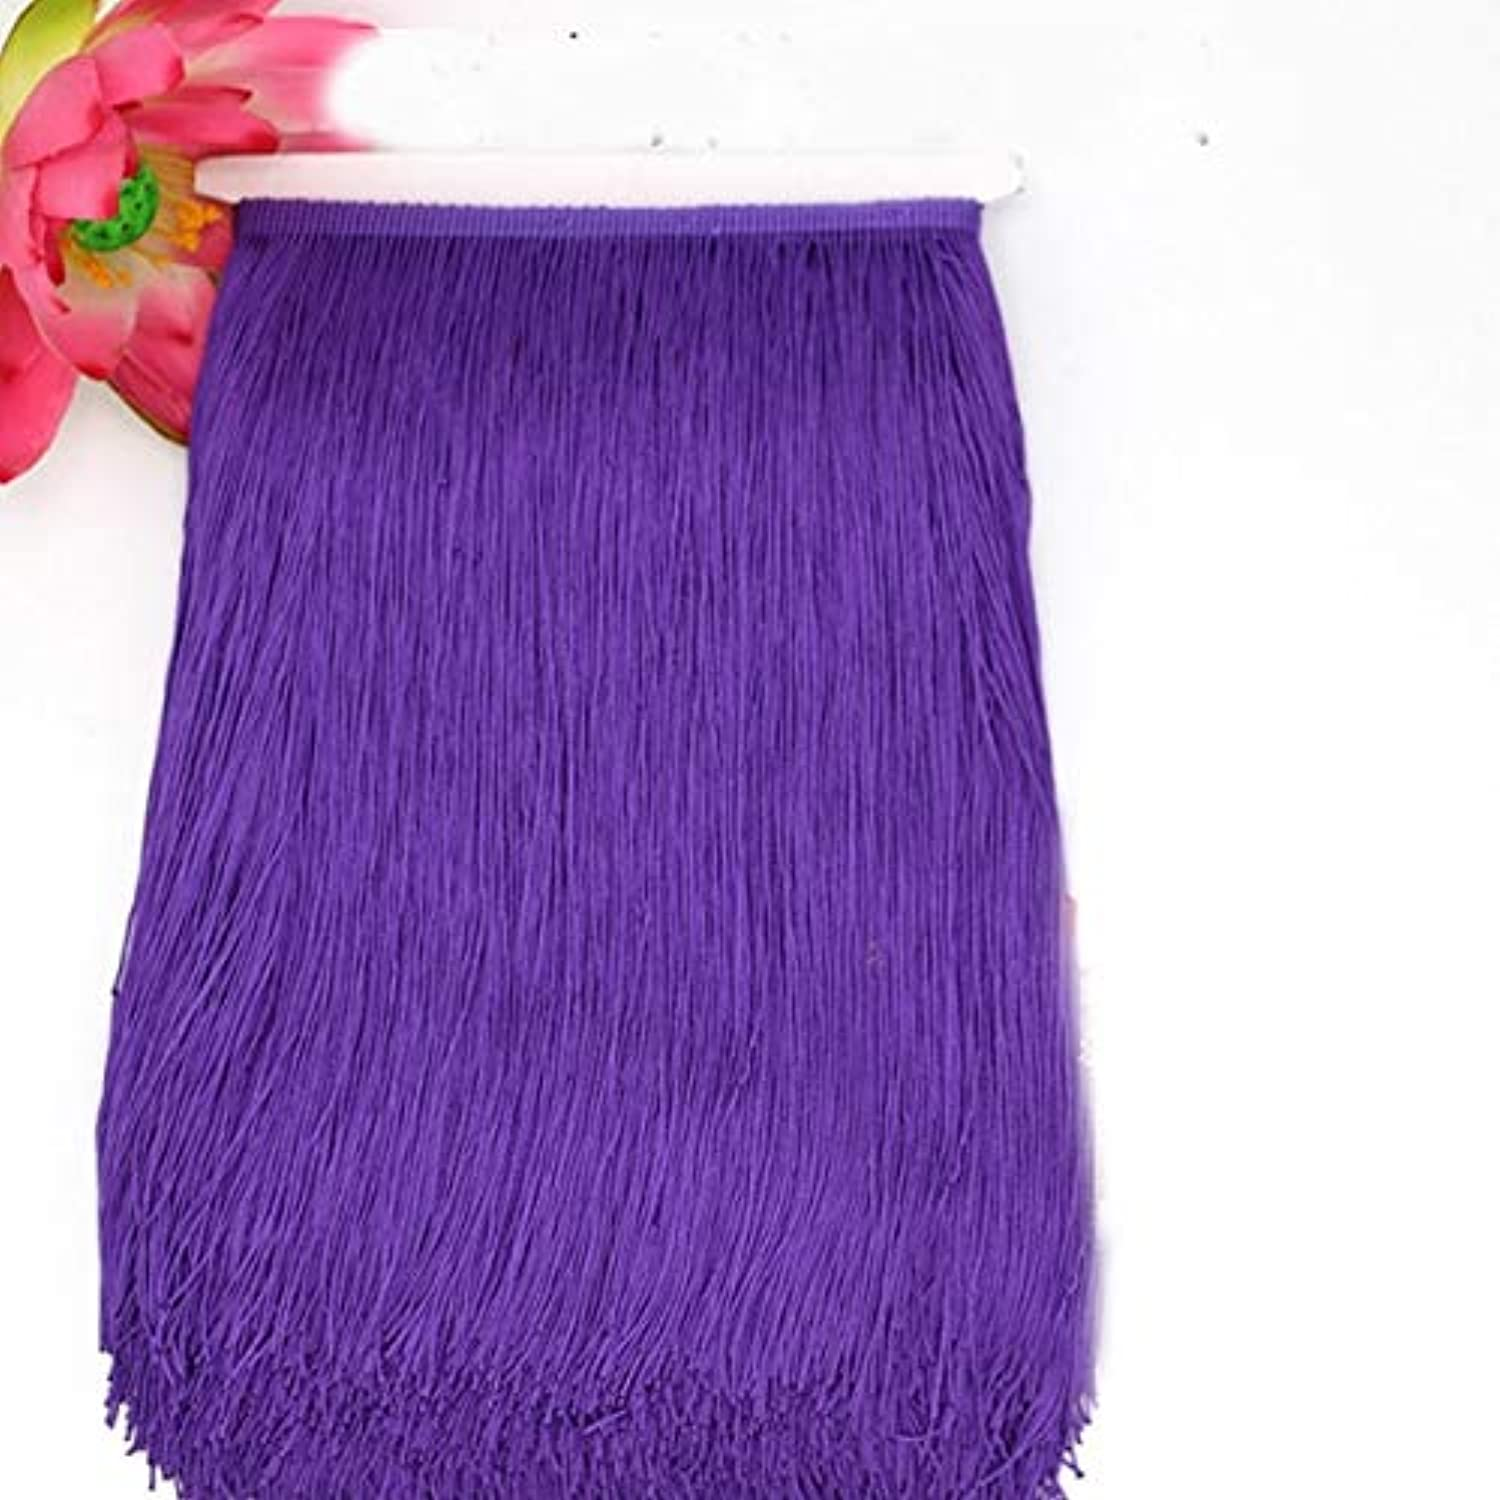 Laliva 10yard lot 30CM Polyester Tassel Lace Fringe Trimming Latin Dance Clothing Accessories DIY Curtain Decoration JK142 - (color  Purple)